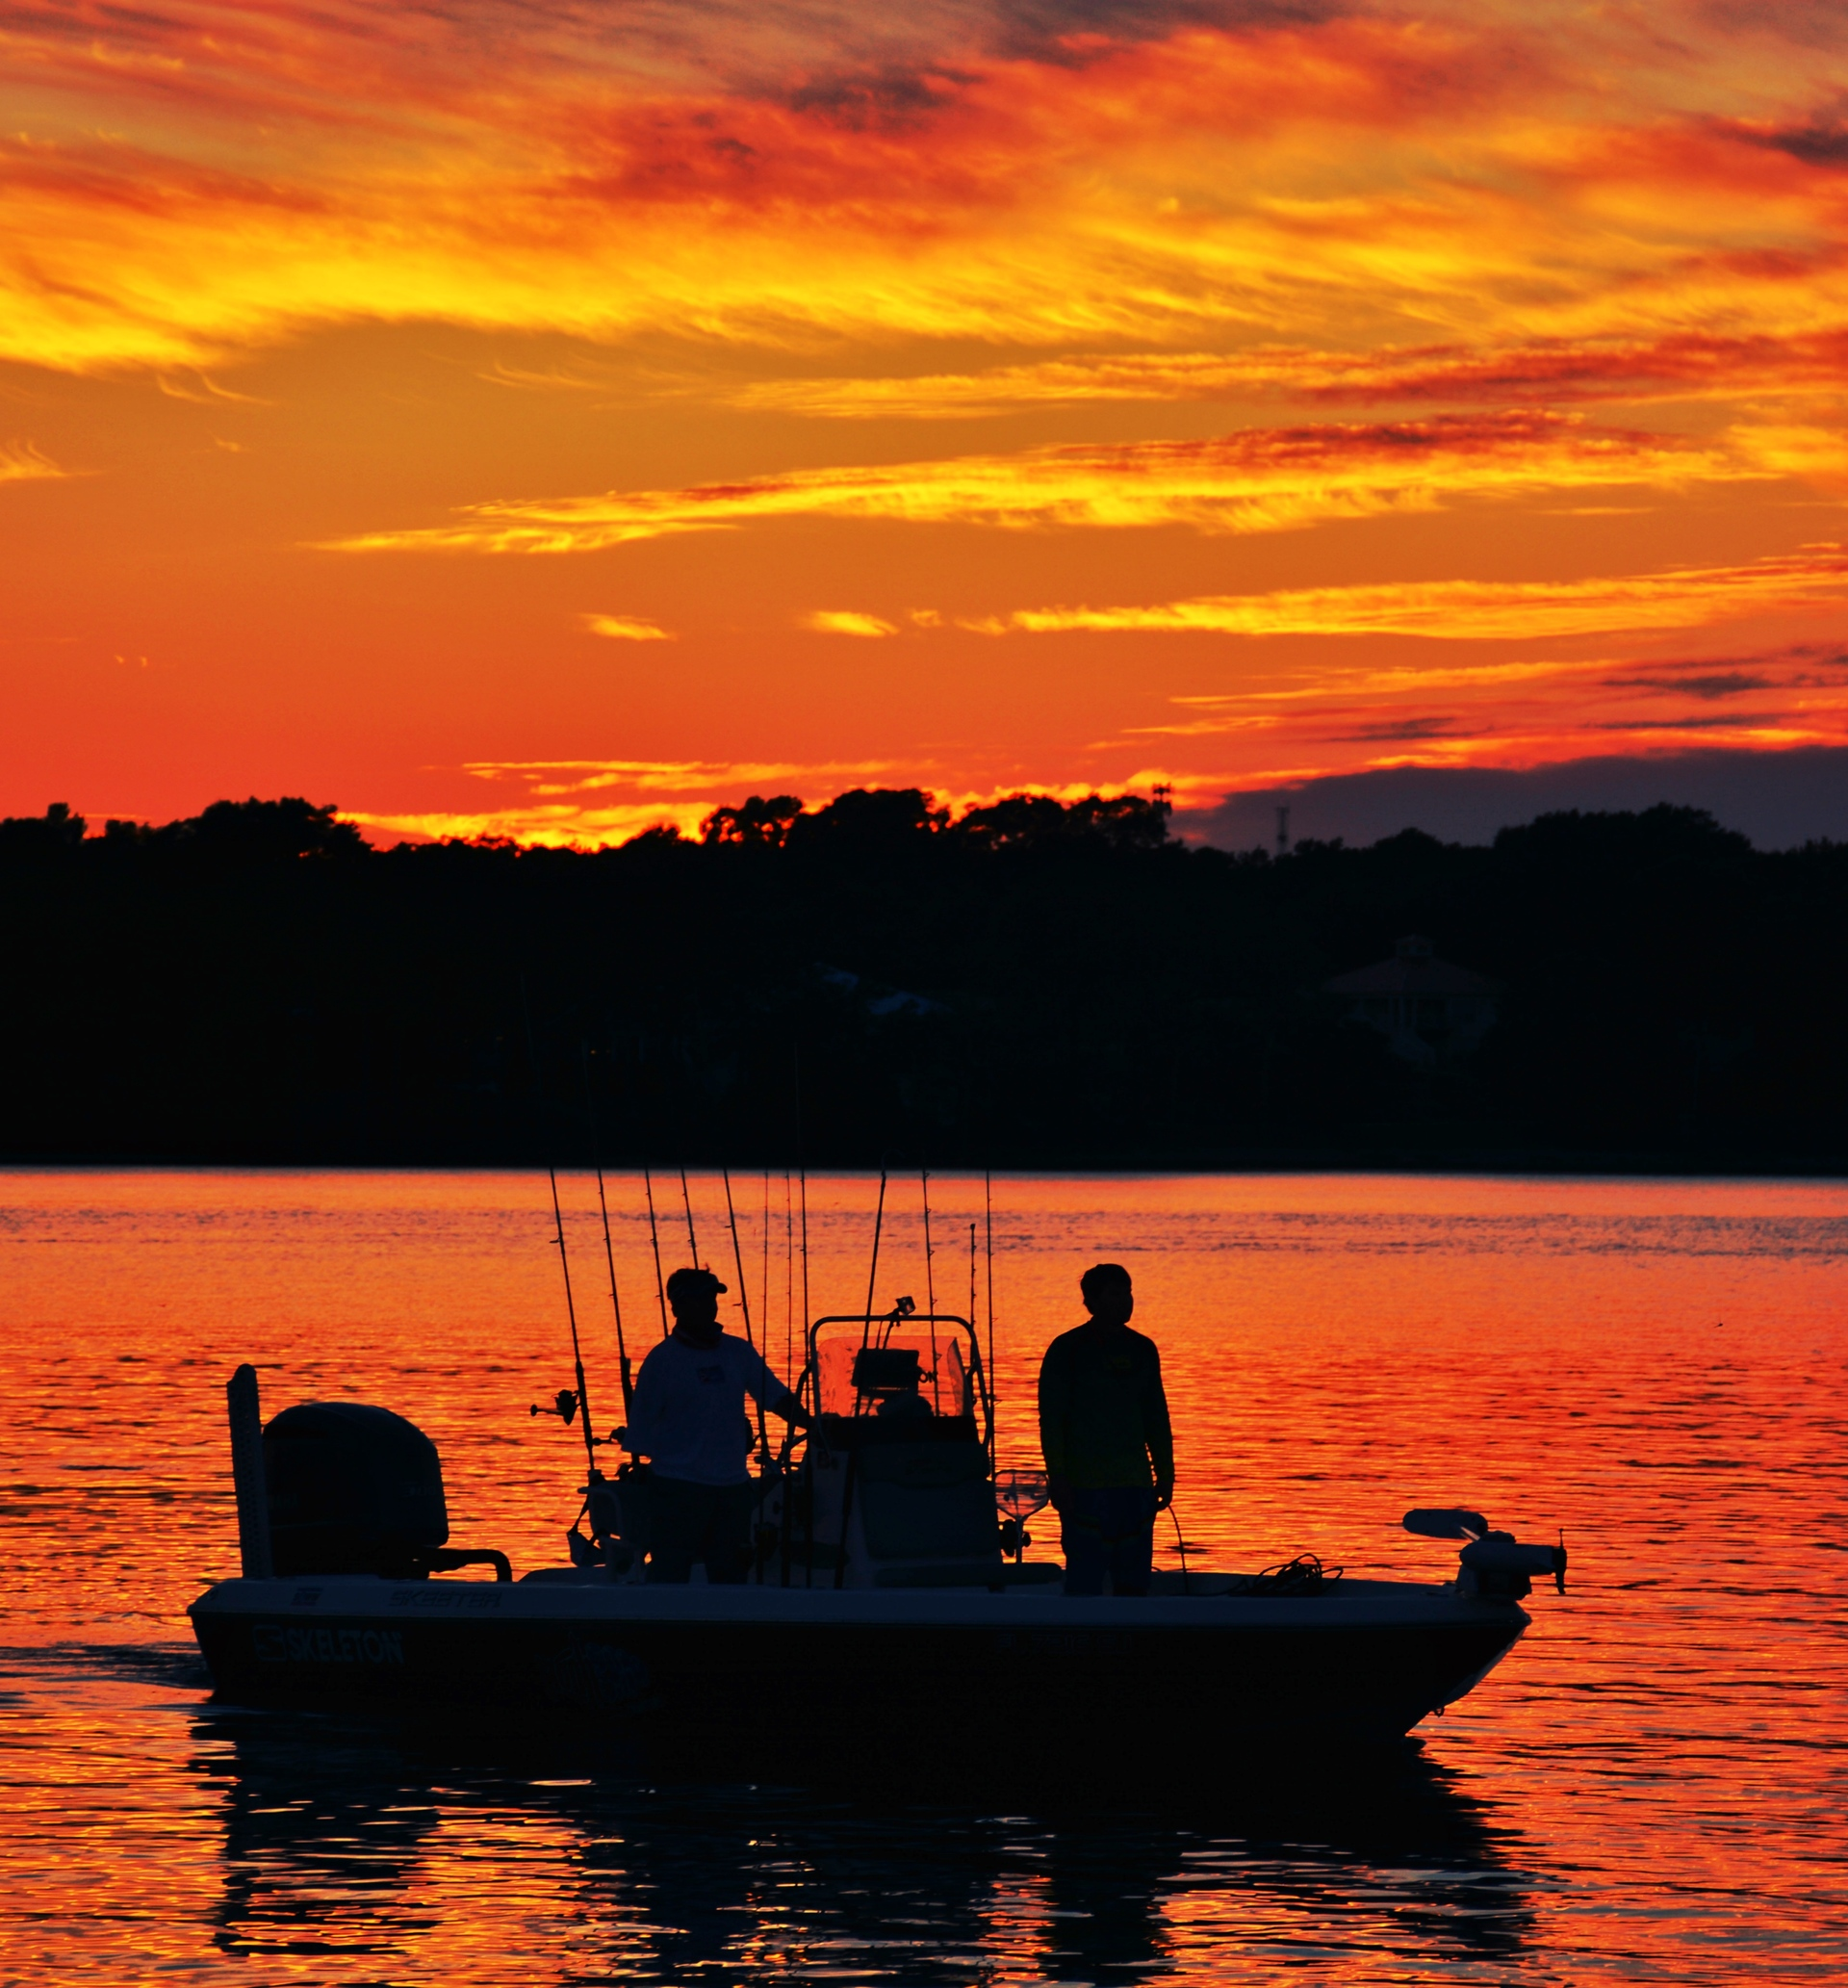 Fishermen return to the dock after a day fishing on the bay! Alluring Sunsets! Like the meeting of two worlds - the known and the unknown. The sun is like a great big romantic, inspirational fire in the sky. Brilliant streaks of yellow, orange, gold, blue, pink and red overcome the blue and purple of the sky. The sky resembled a prism; all the colors blended perfectly together. It's as if the colors and intensity of the light is just enough to calm you. The brilliant orb of amber and tangerine sunk lower and lower in the sky until it dipped down into the horizon. My work is done for today. I'm not sure what tomorrow will bring, but I'll be prepared for it!